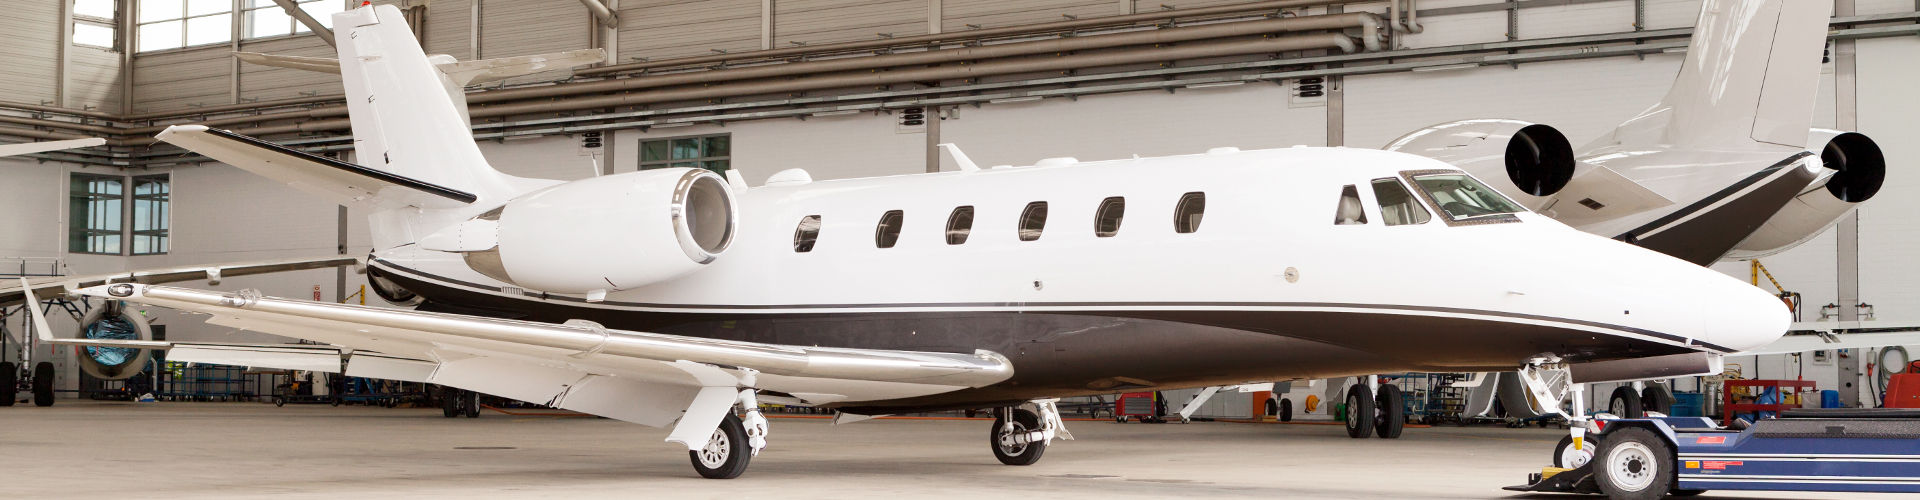 private jet charter merchant account in hanger